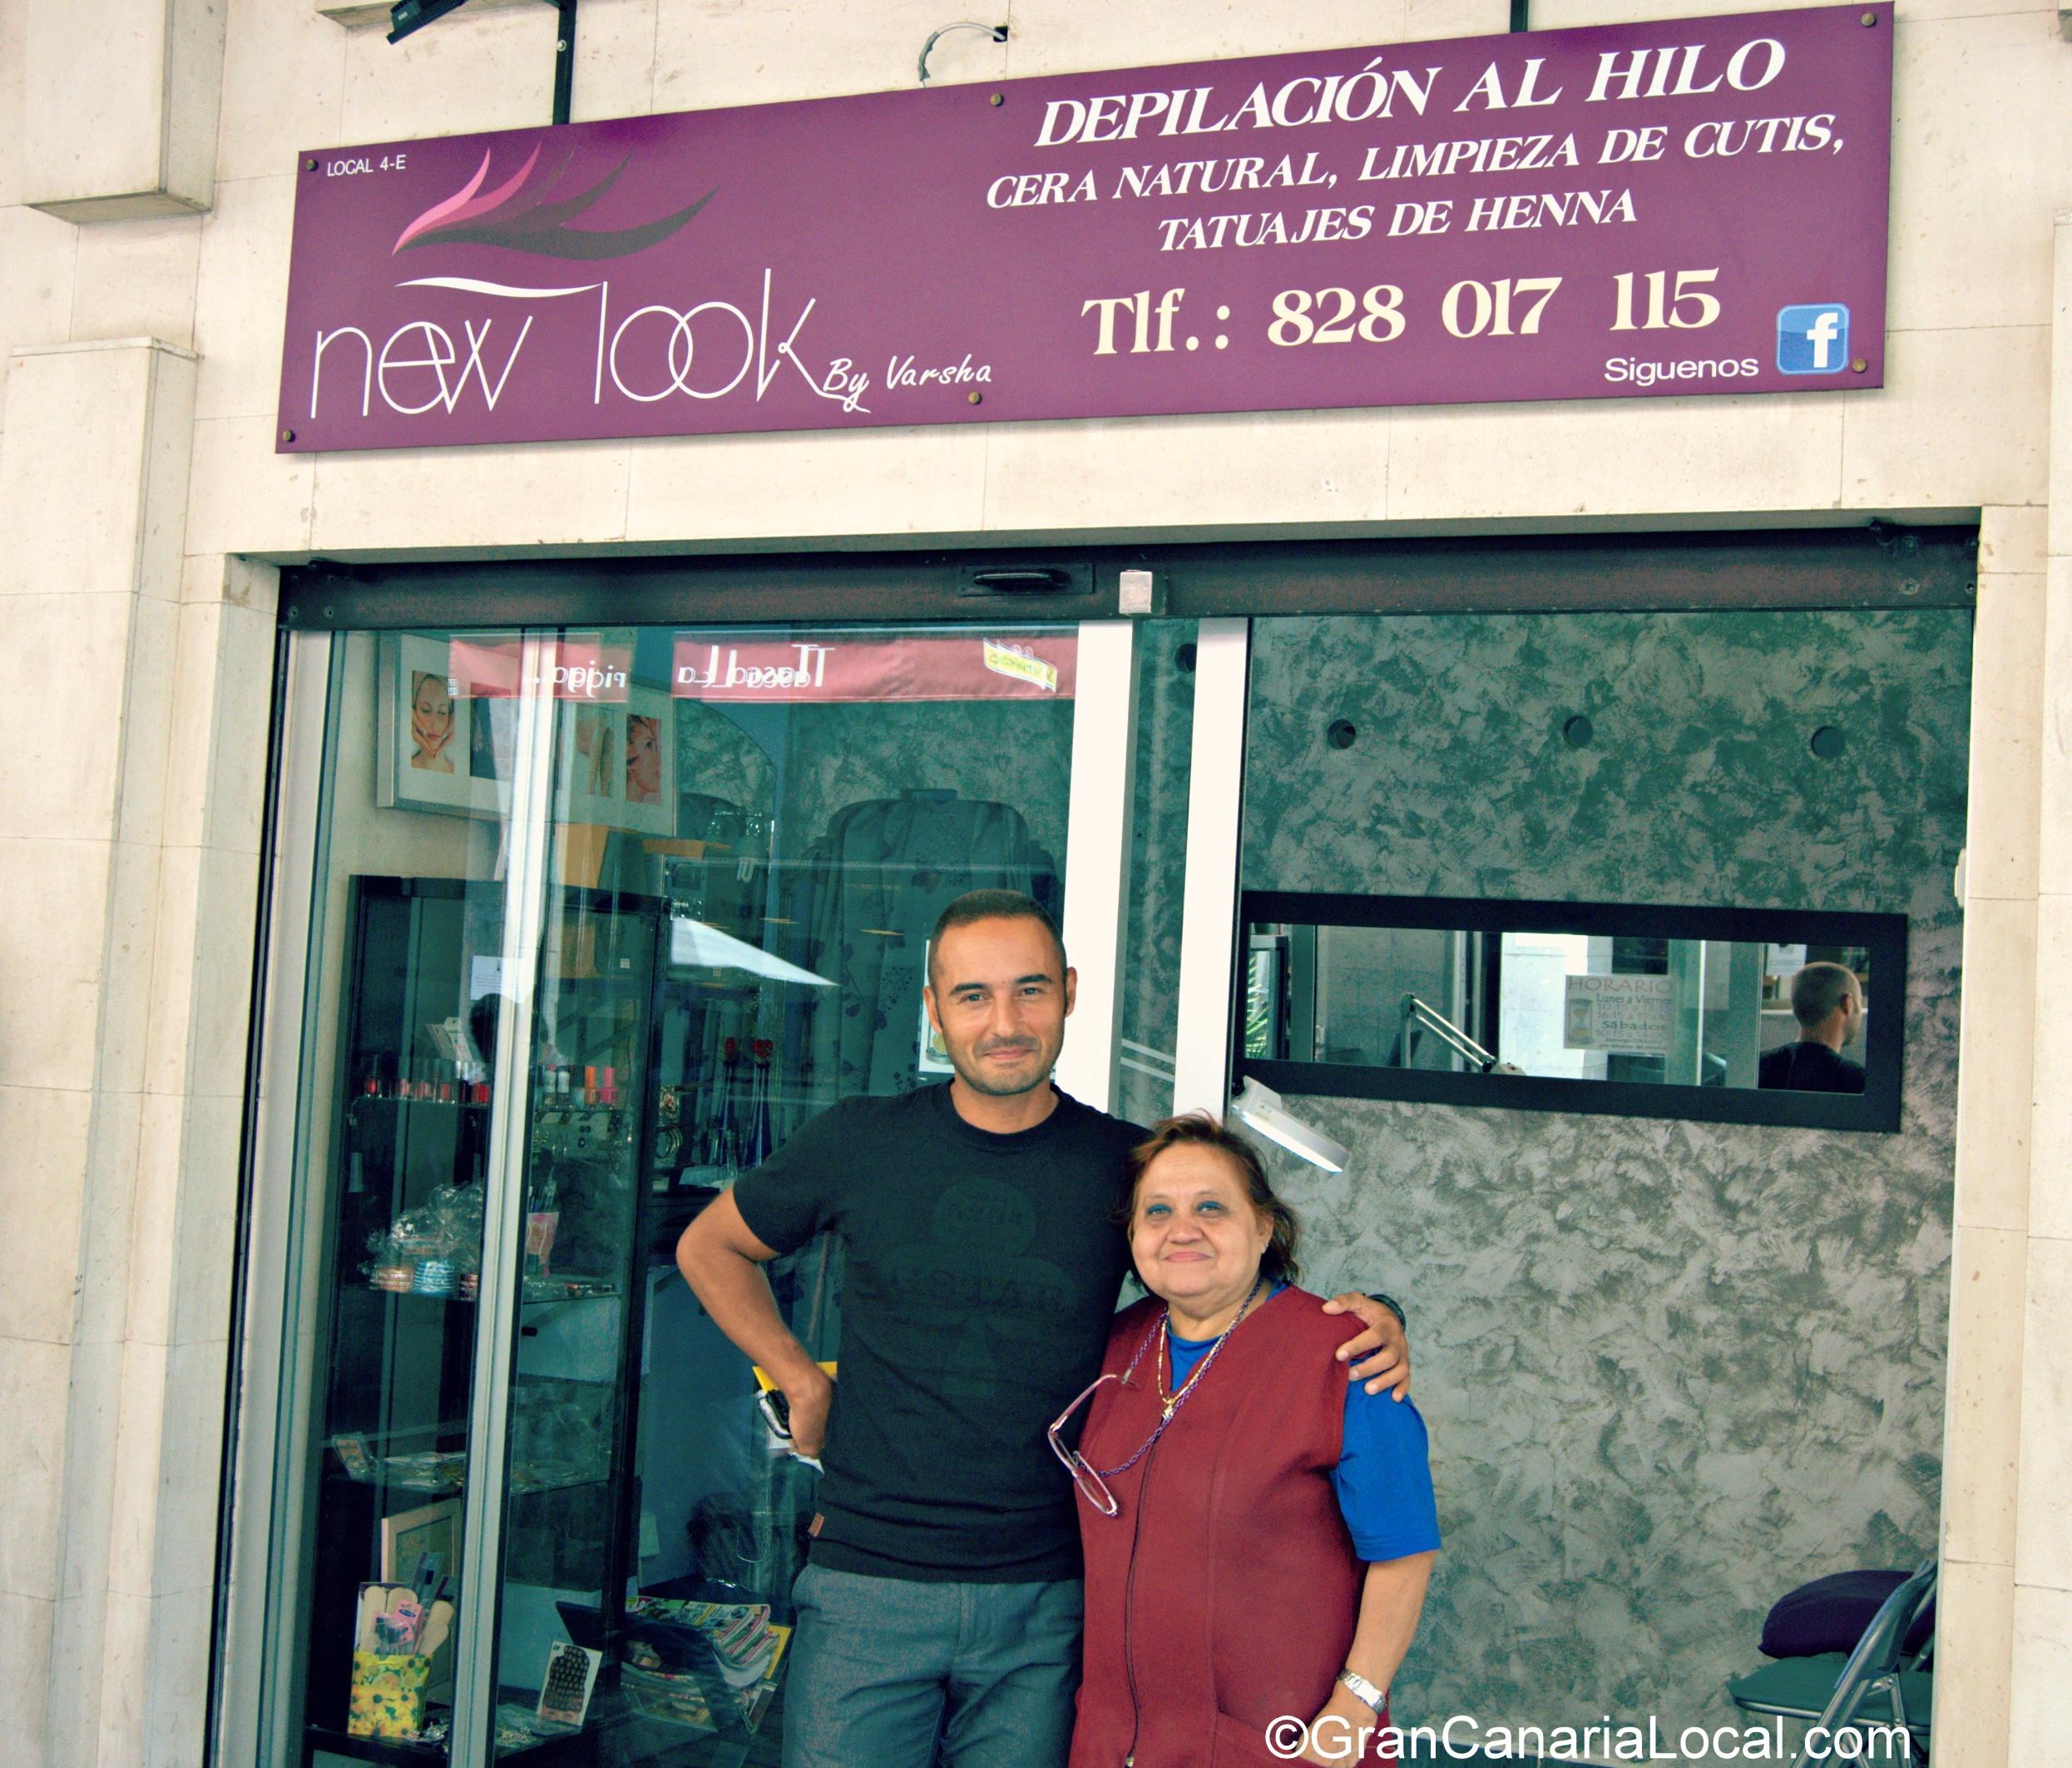 Mercado del Puerto manager with New Look owner Varsha